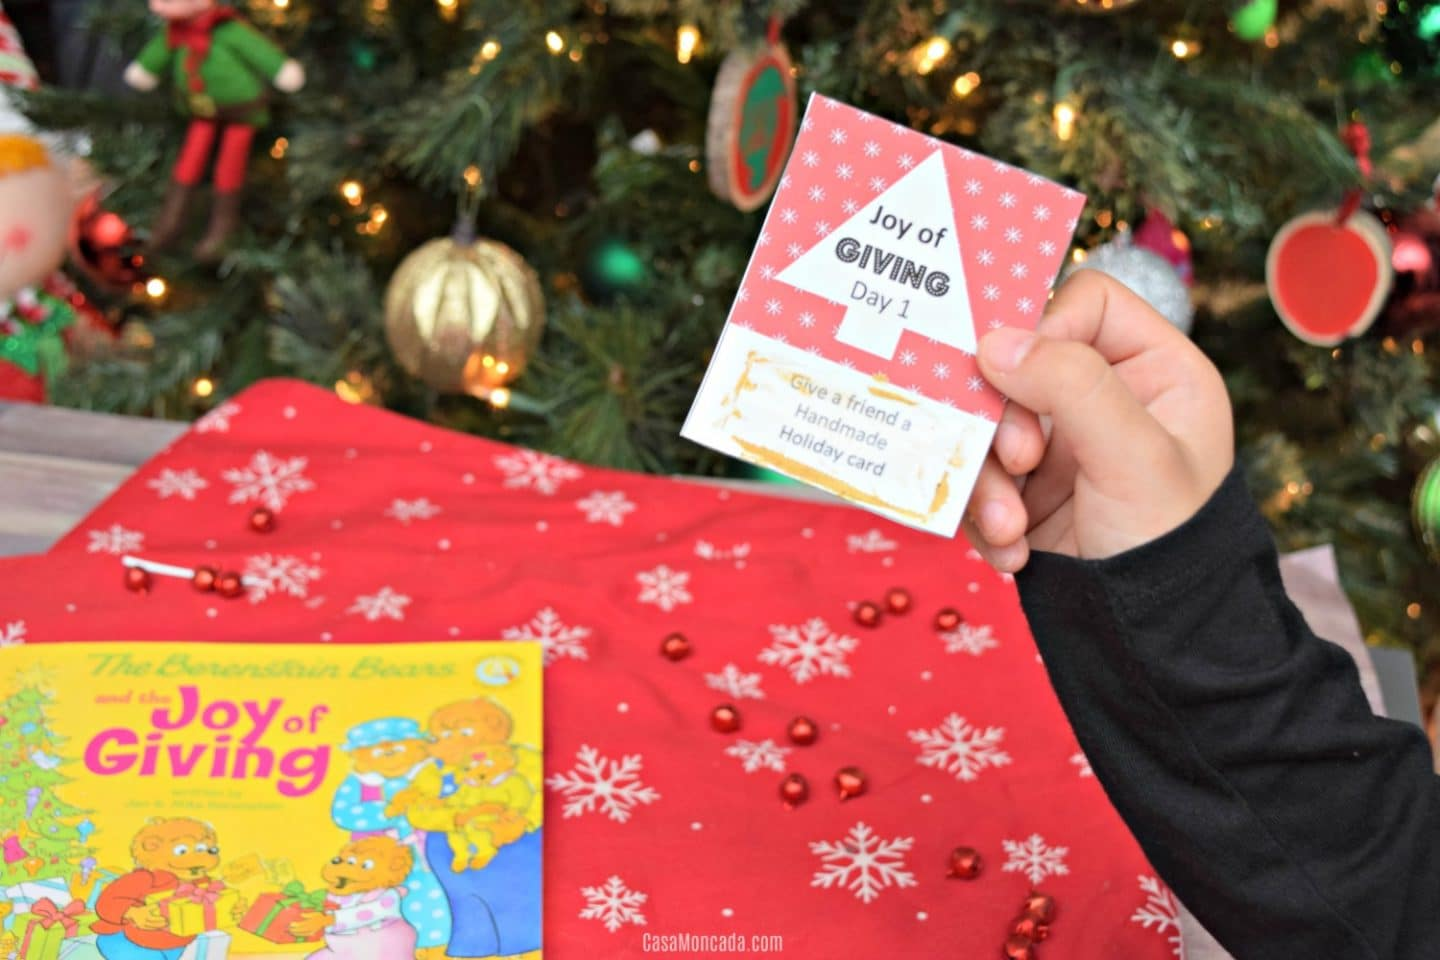 Joy of Giving scratch off card